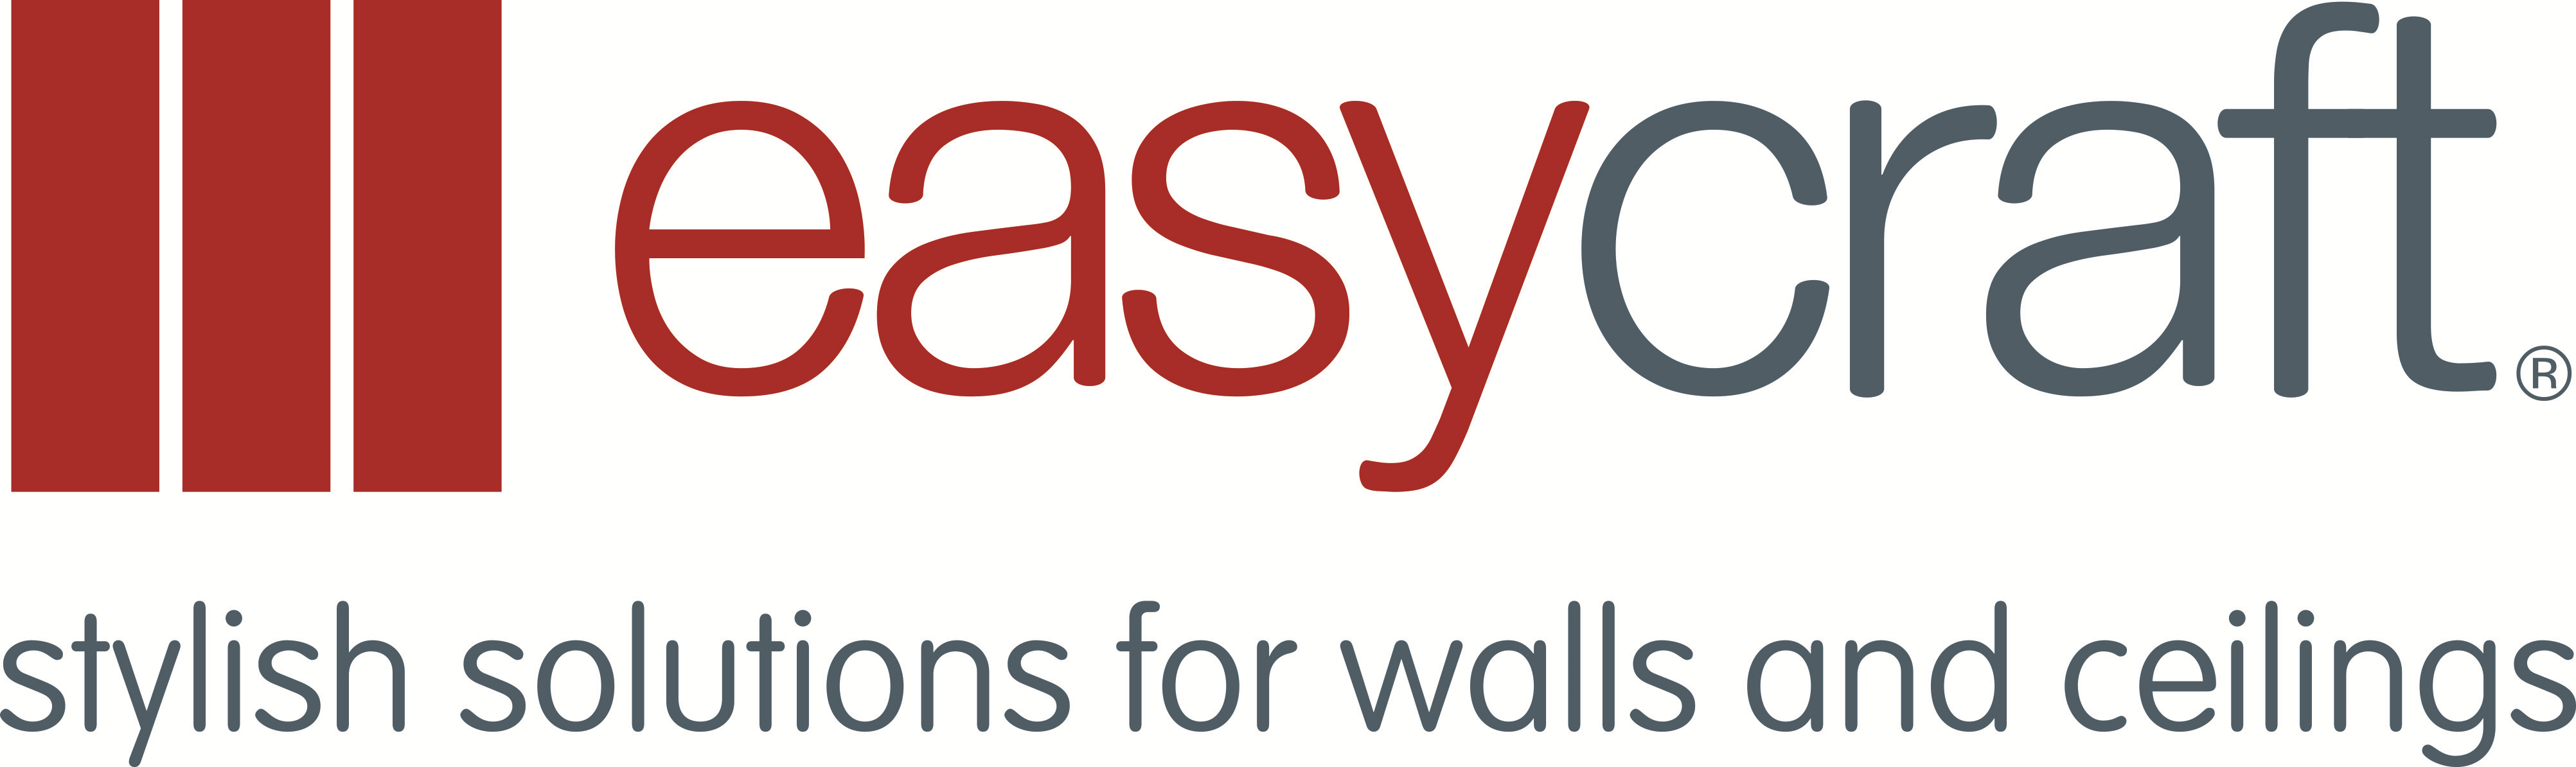 easycraft logo